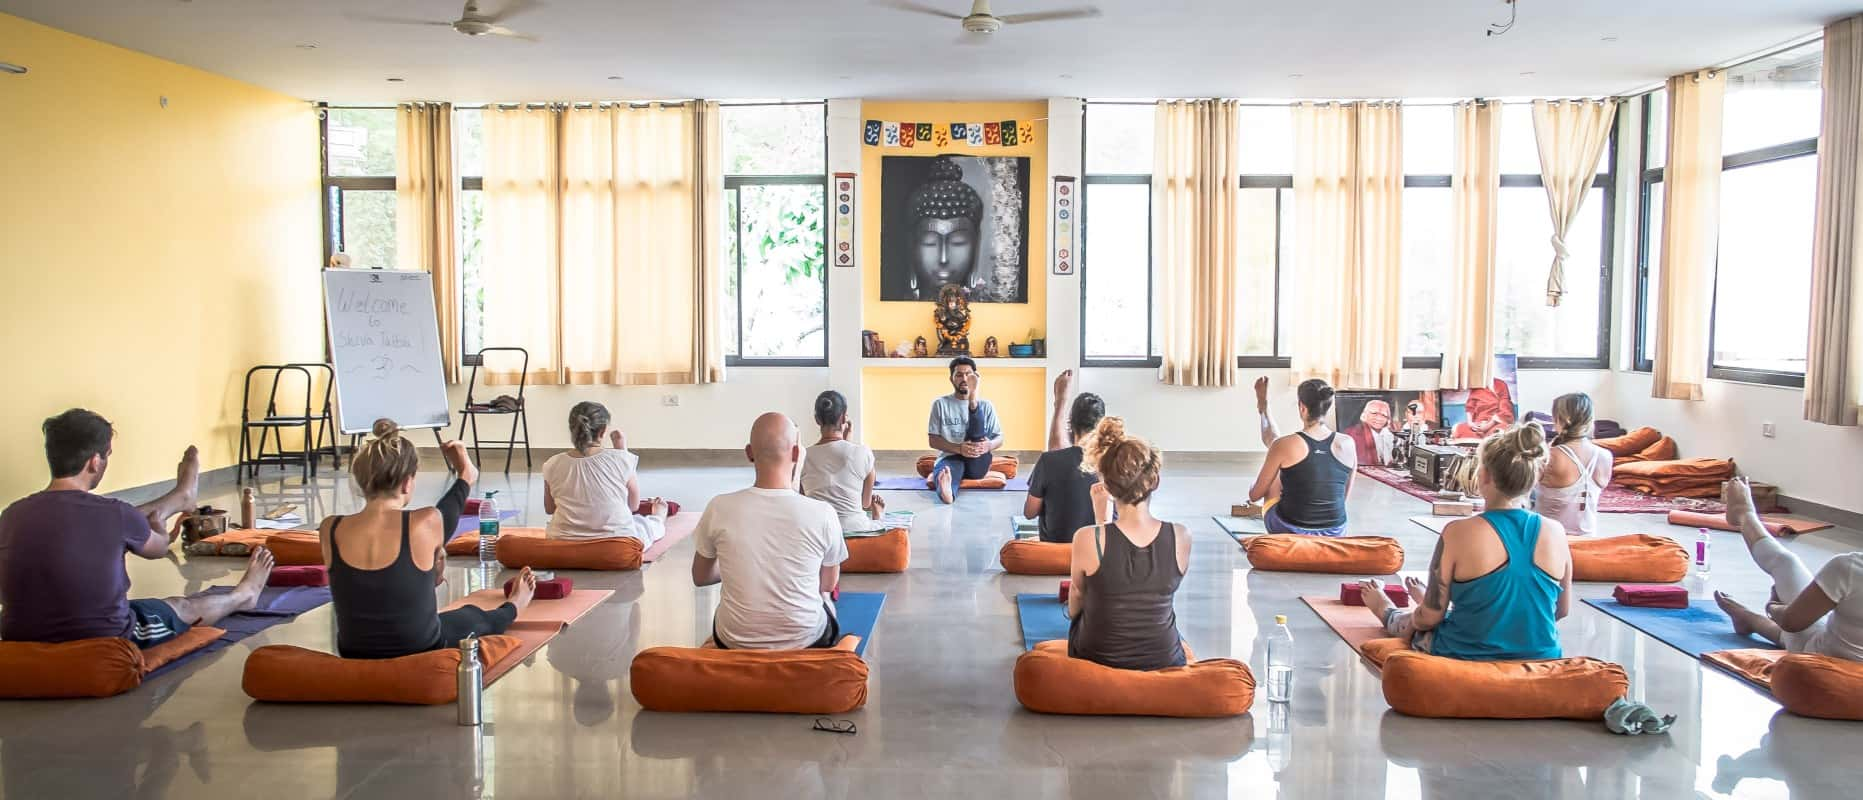 200 Hour Hatha Yoga Teacher Training in India